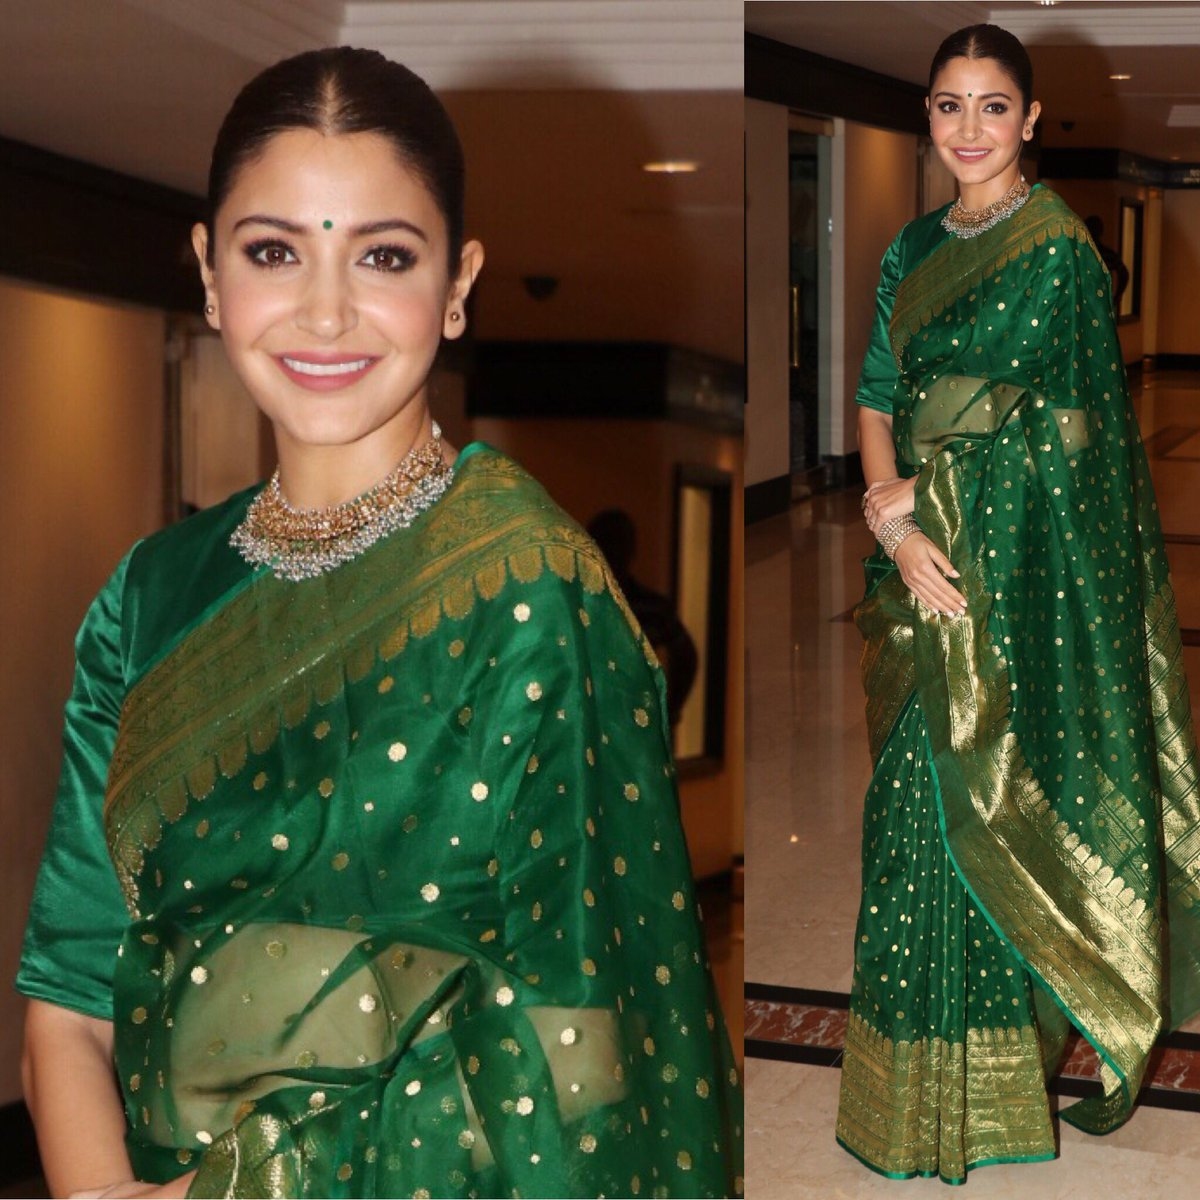 Anushka Sharma Looks Drop-Dead Gorgeous in a Green Silk Saree